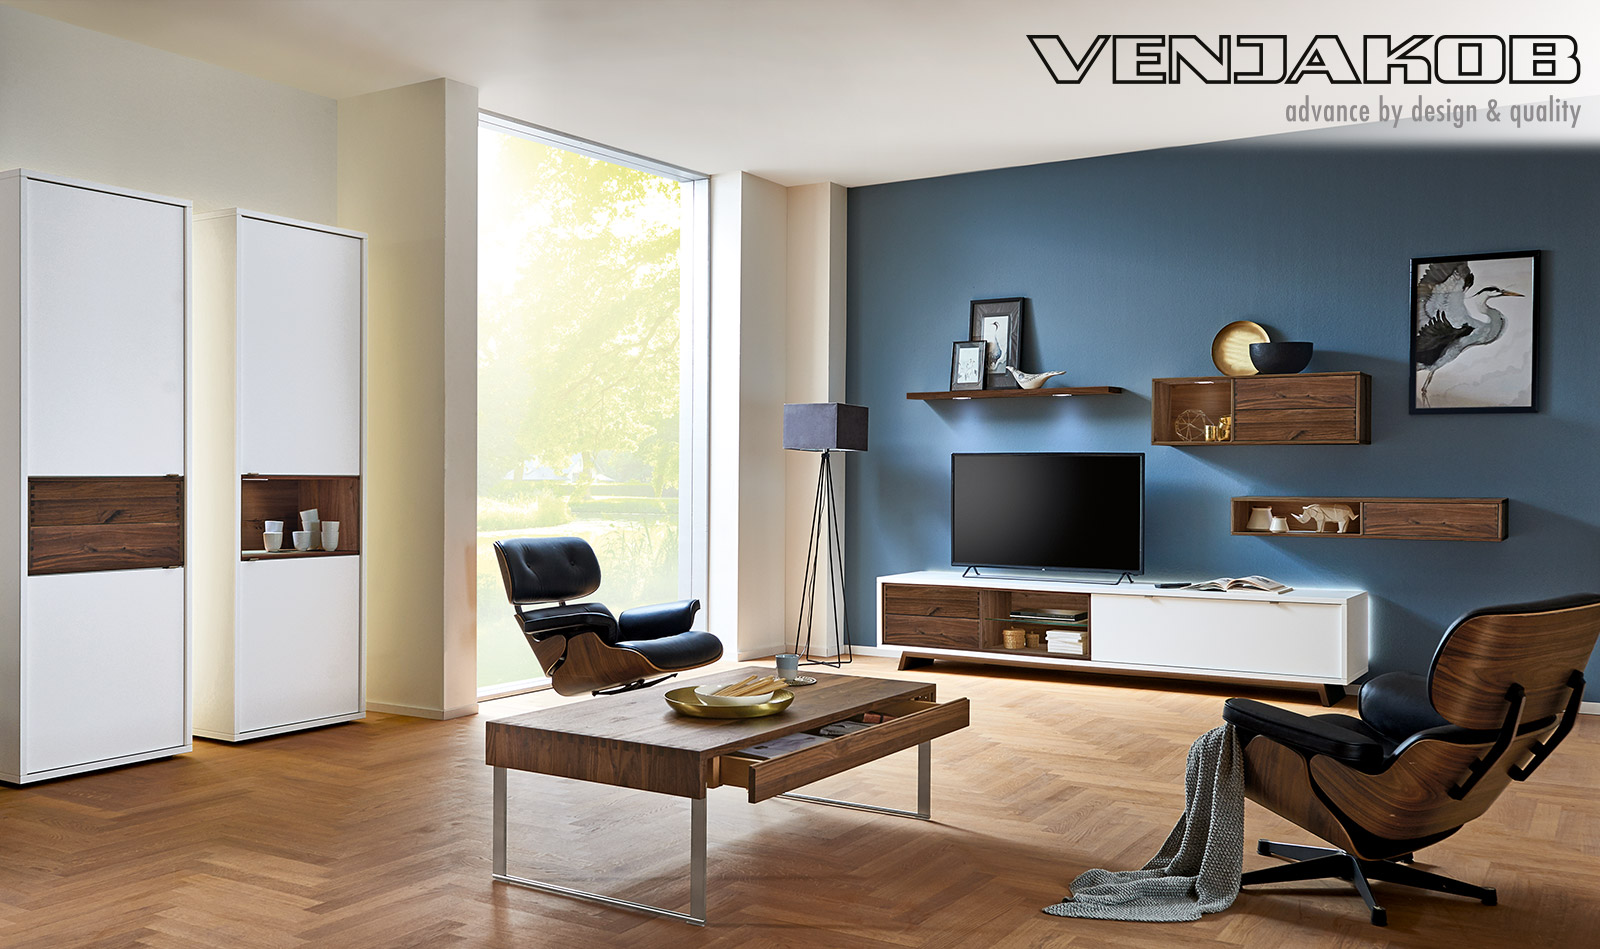 Venjakob macao Living Collection